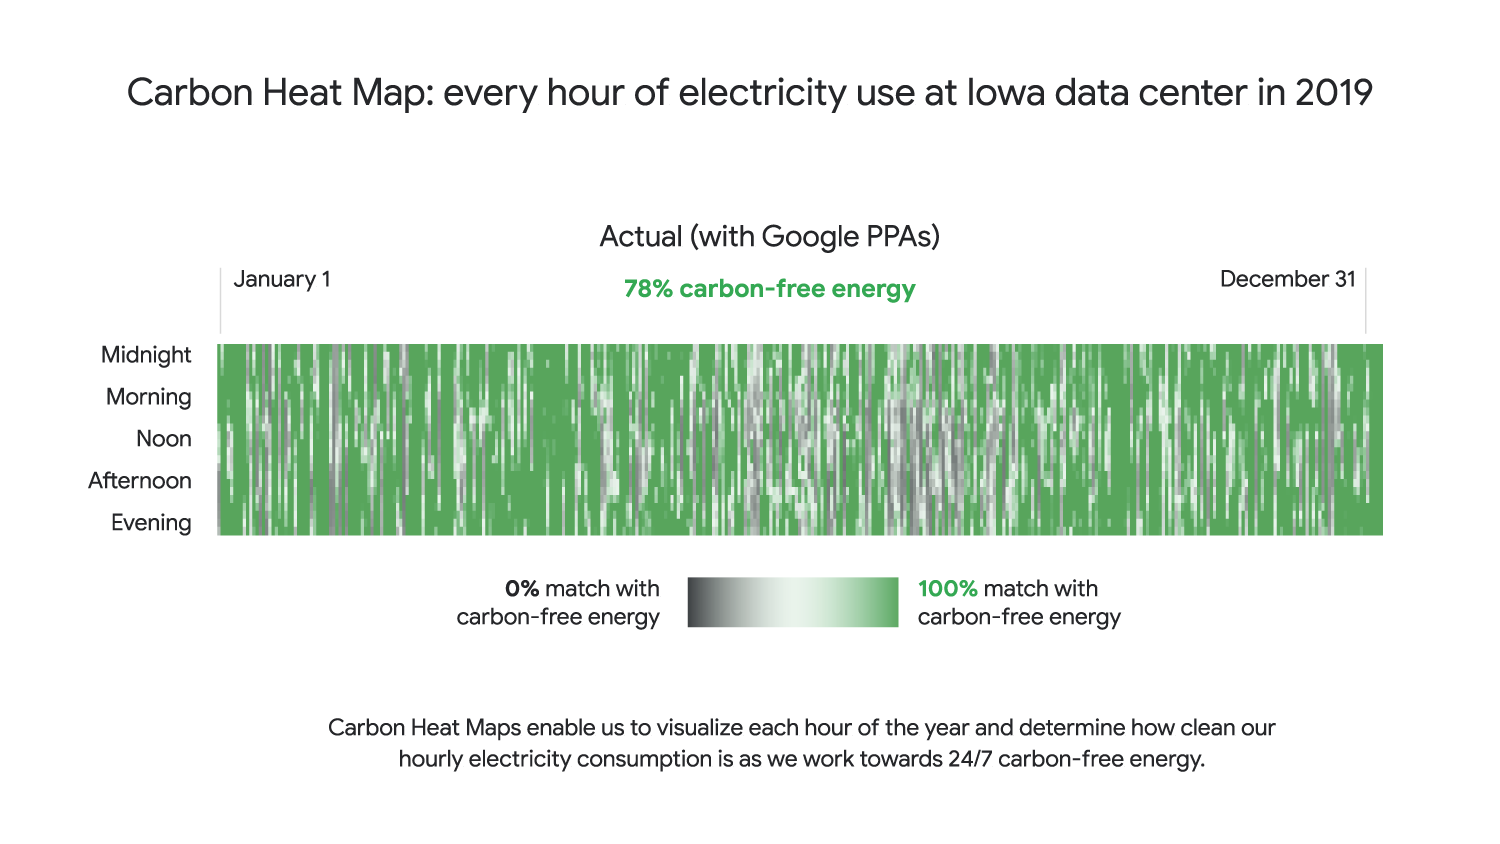 Visual showing every hour of electricity use at Iowa data center in 2019